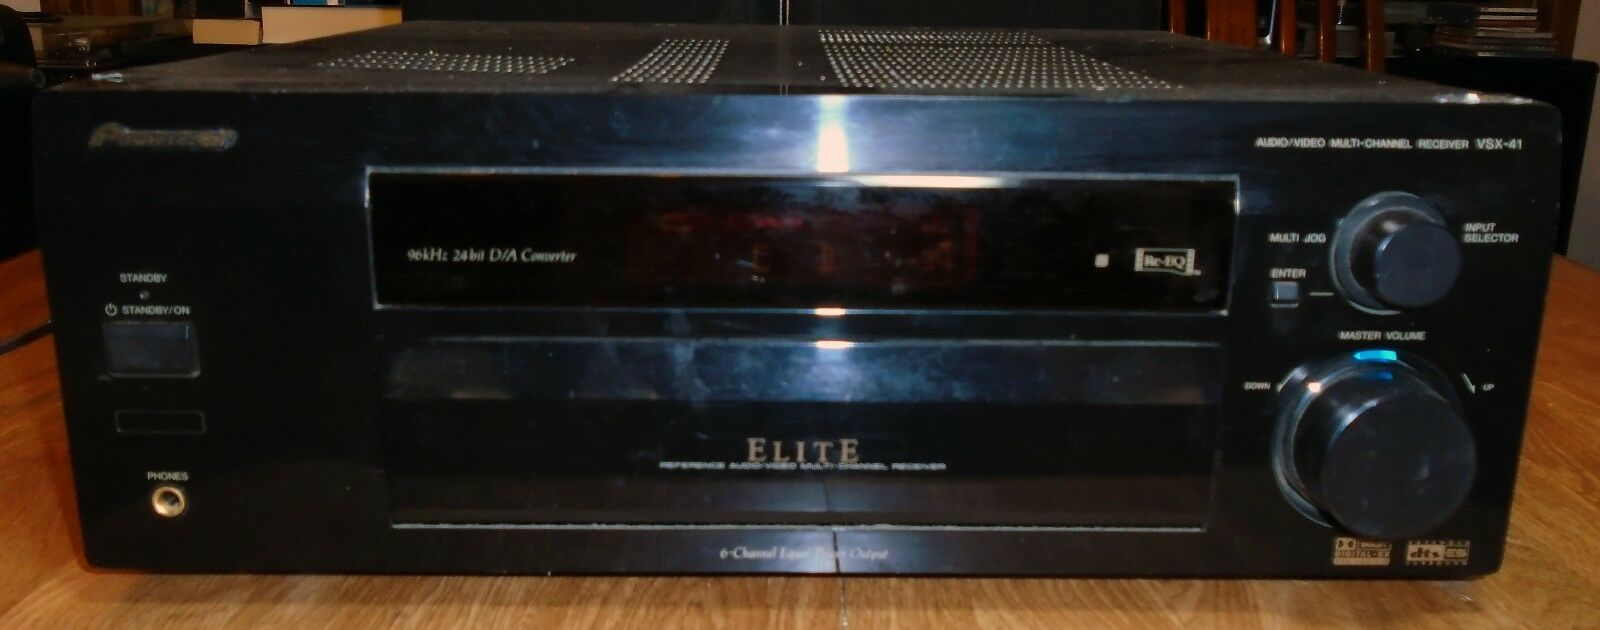 $99.00 - PIONEER ELITE VSX-41 === 5.1 ch / 660 Watts Home Theater Receiver w/Digital